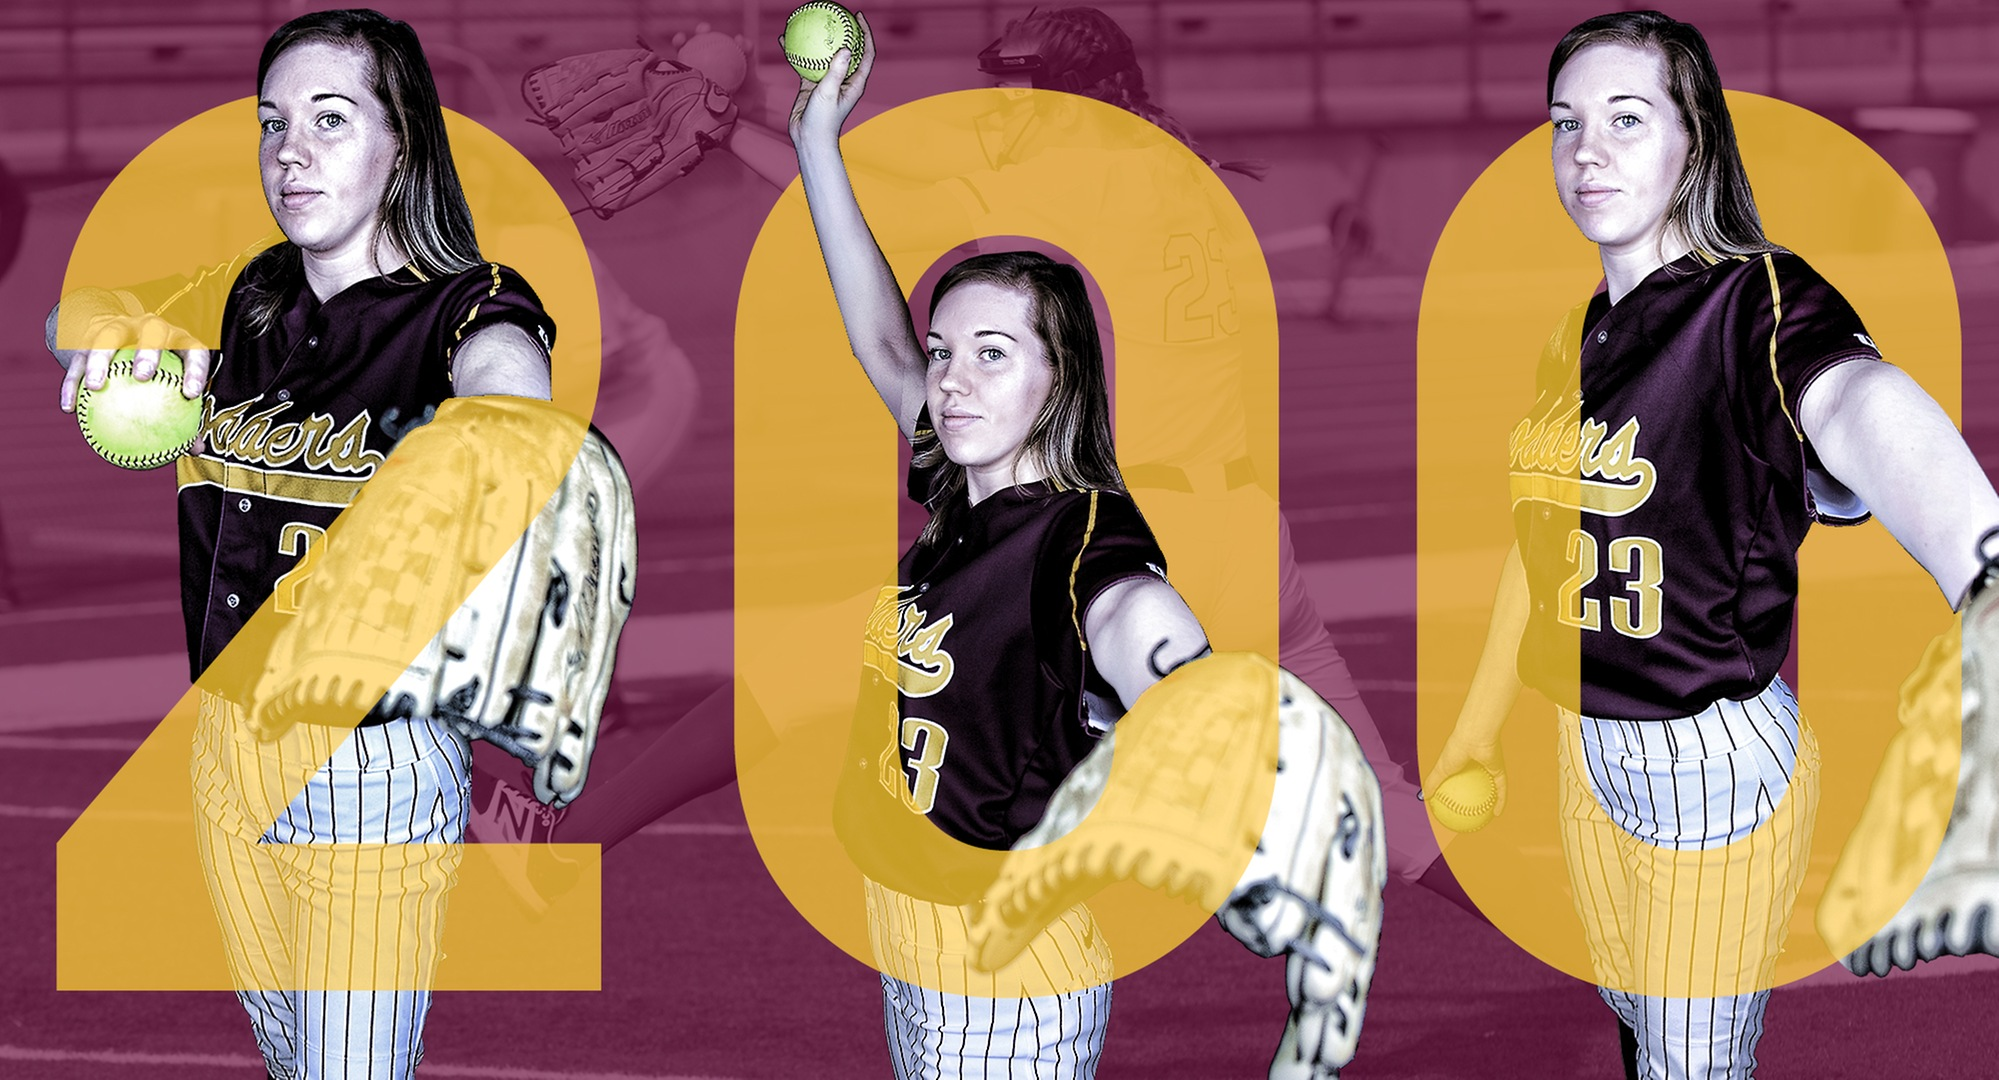 Megan Gavin struck out six in the first game at St. Olaf to become the fifth Cobber in school history to reach the 200 strikeout mark.